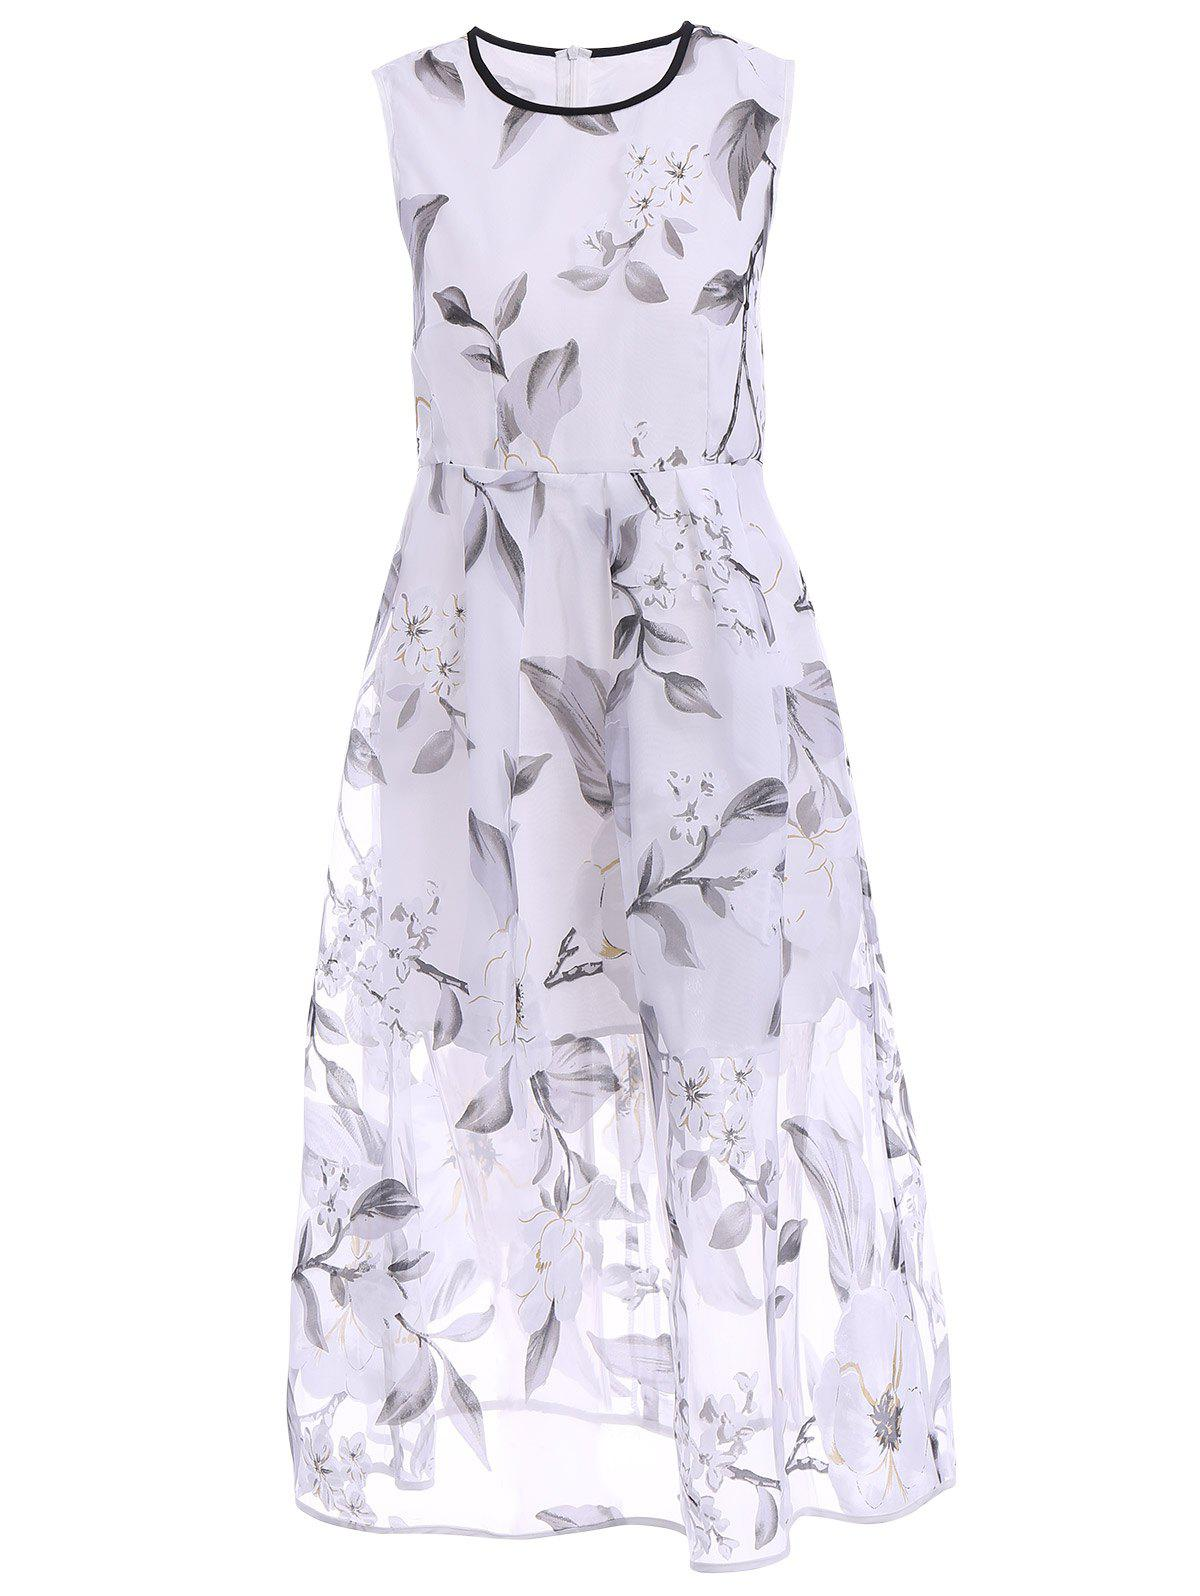 Sweet Jewel Neck Sleeveless Women's Organza Floral Dress - WHITE L